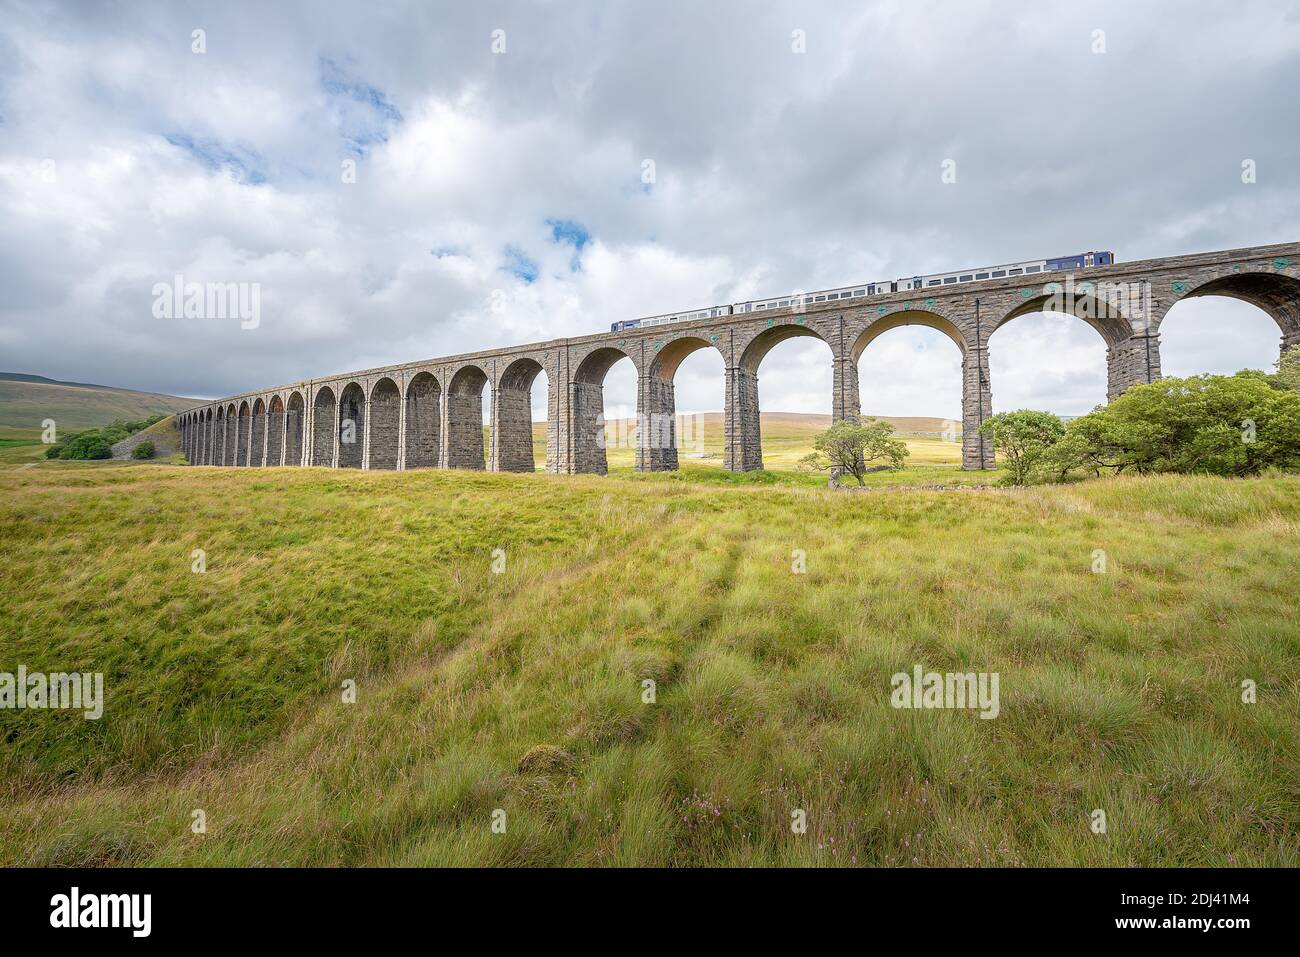 Yorkshire Dales National Park, Yorkshire, UK - A view of Ribblehead viaduct in the Yorkshire Dales, England. Stock Photo